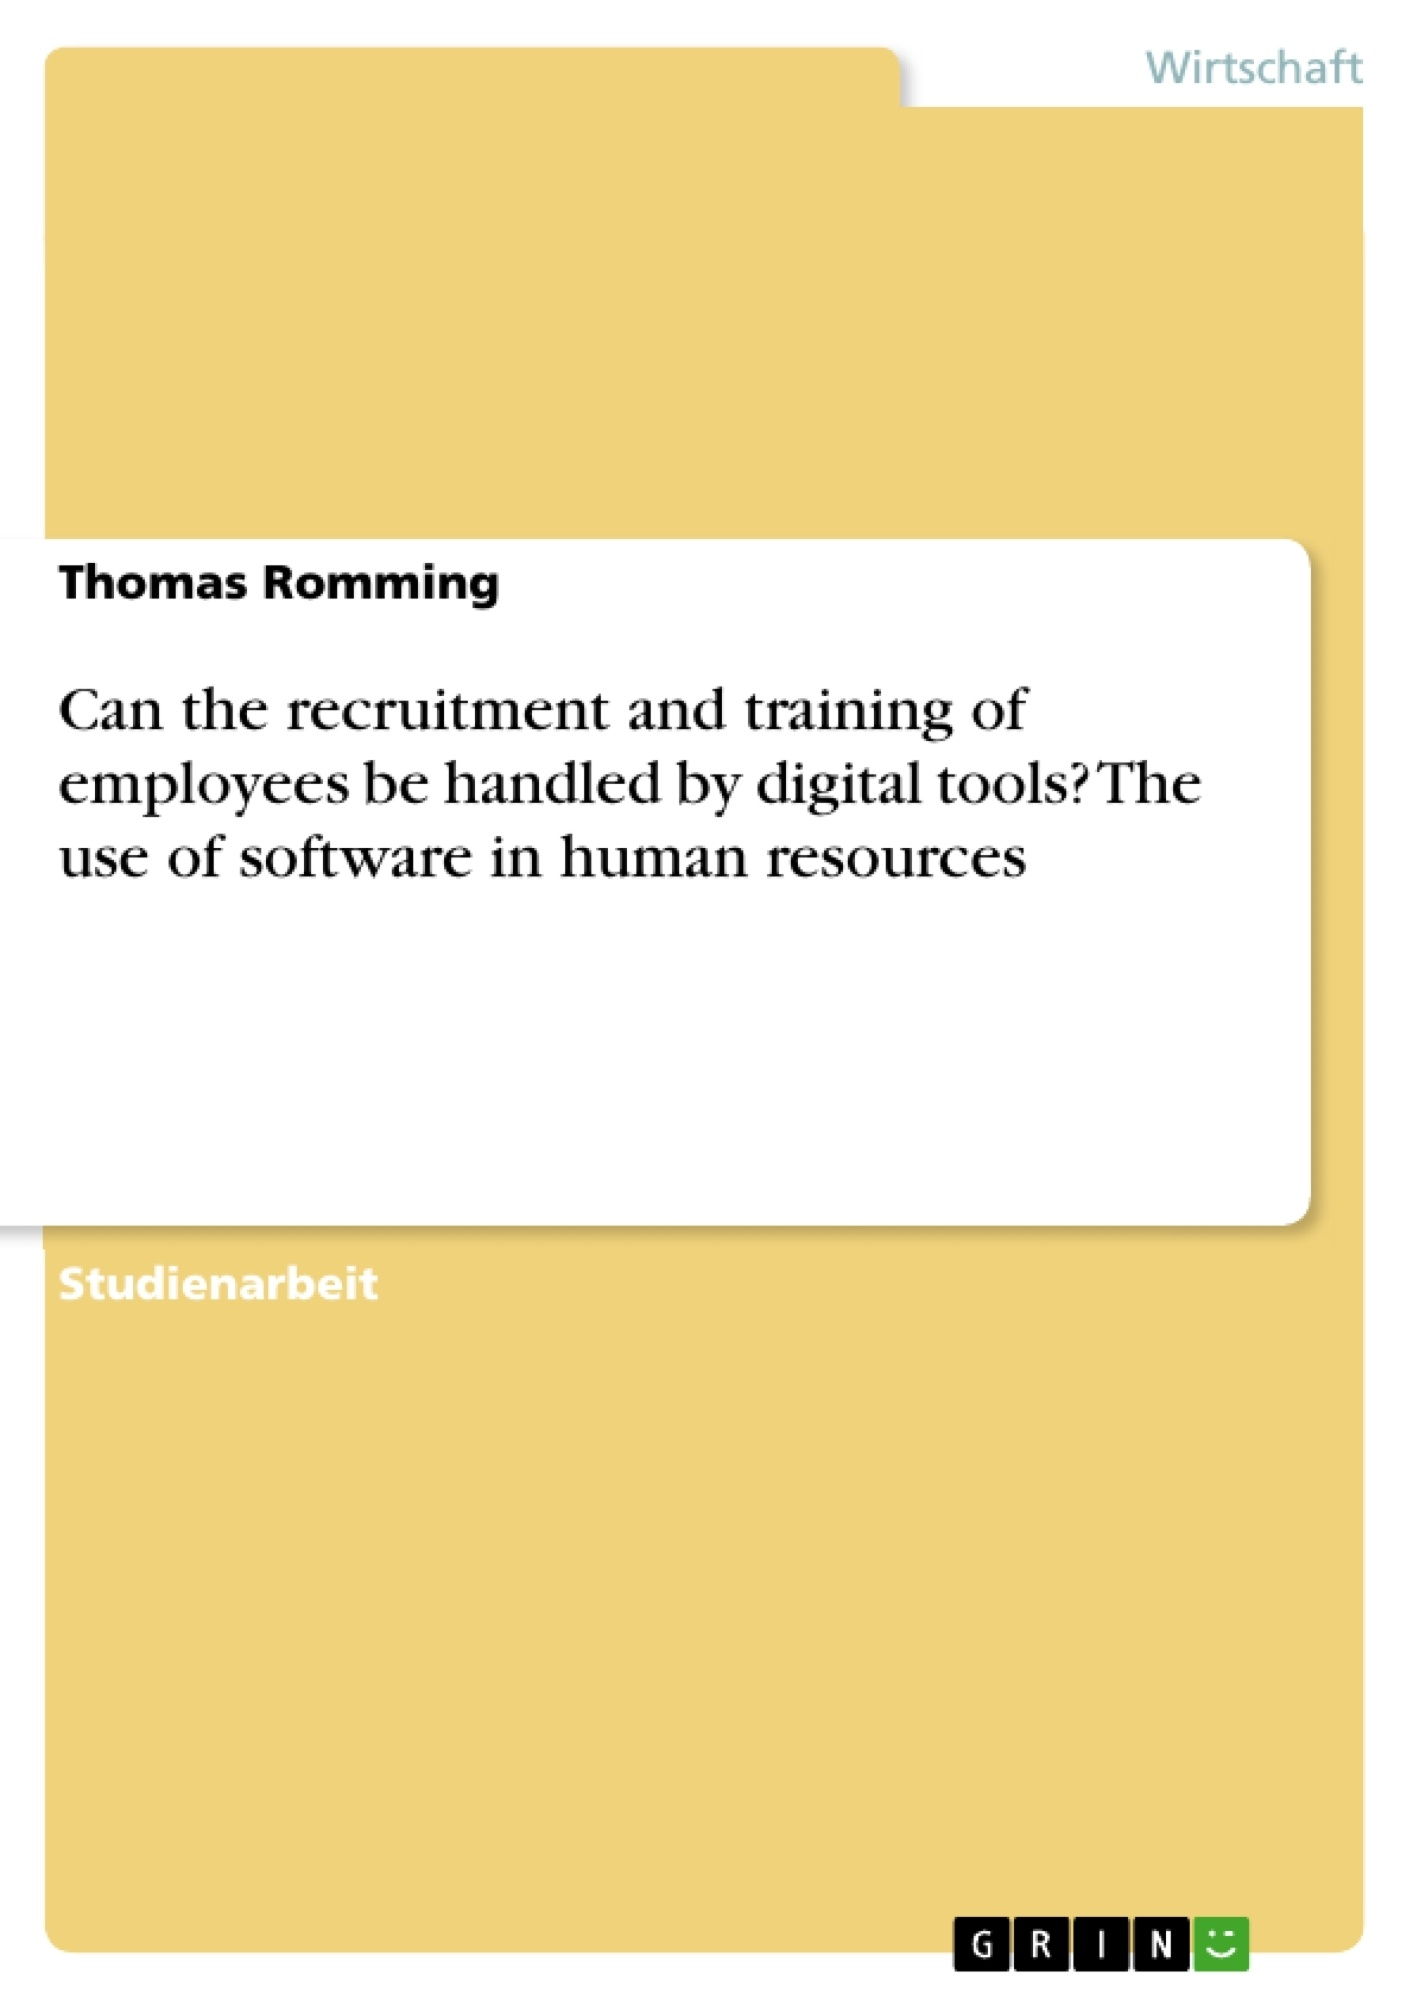 Titel: Can the recruitment and training of employees be handled by digital tools? The use of software in human resources